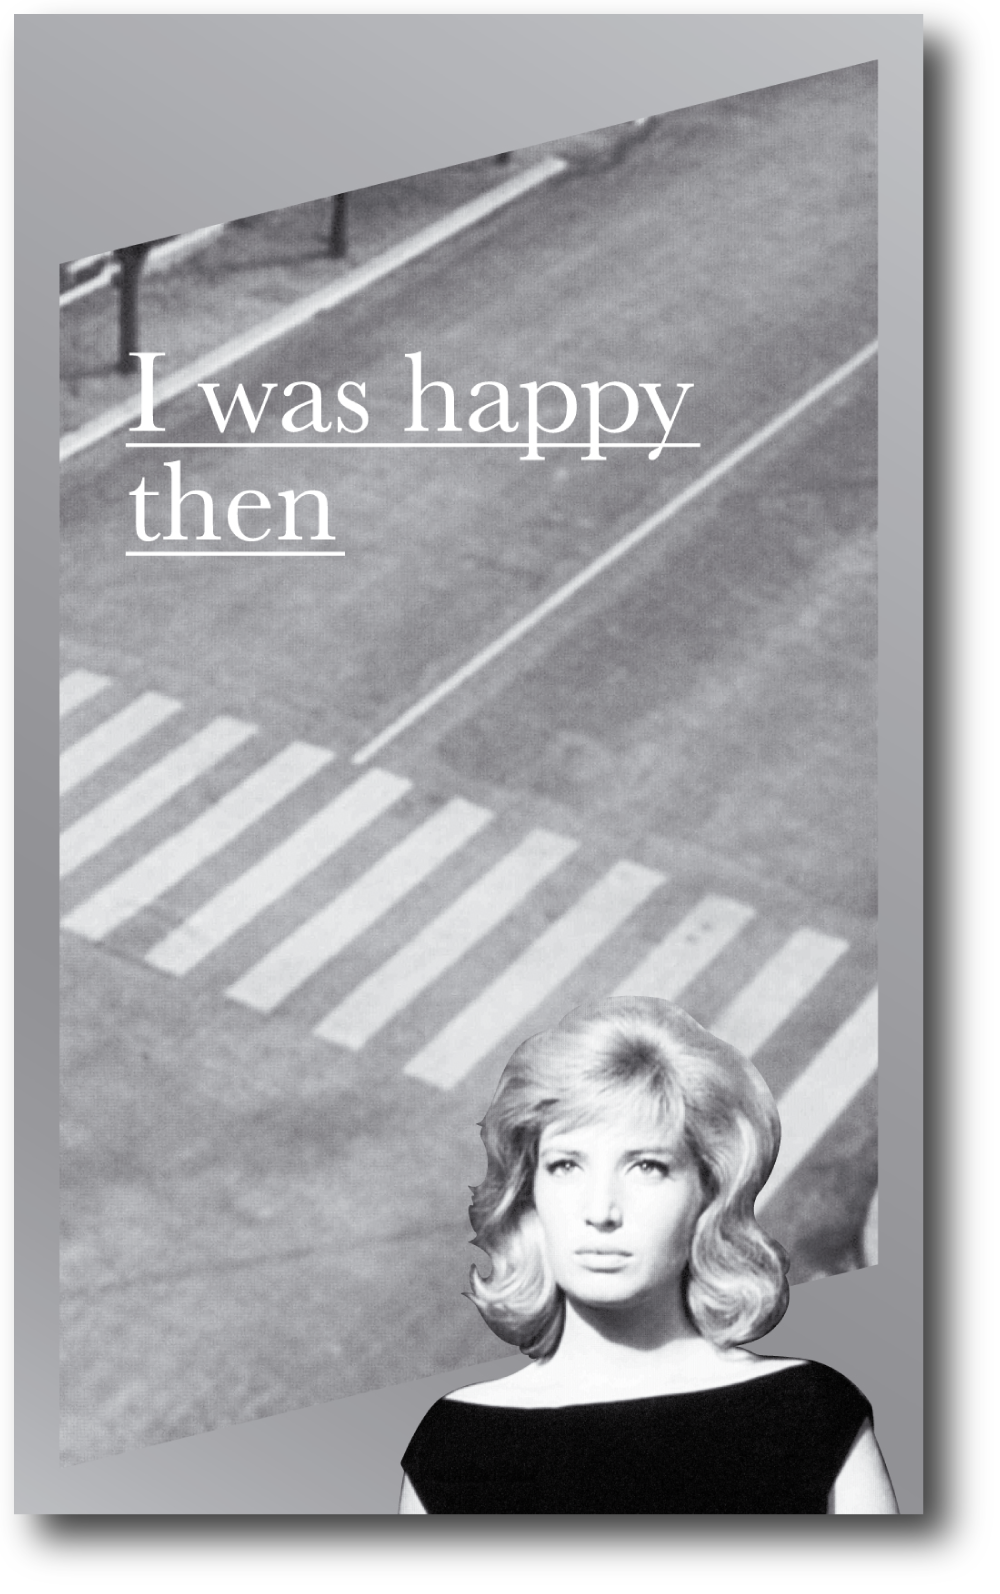 I was happy then , Published by Bureau for Open Culture, 2013; designed by Nate Padavick; 160 pages; 8.25 x 5 inches